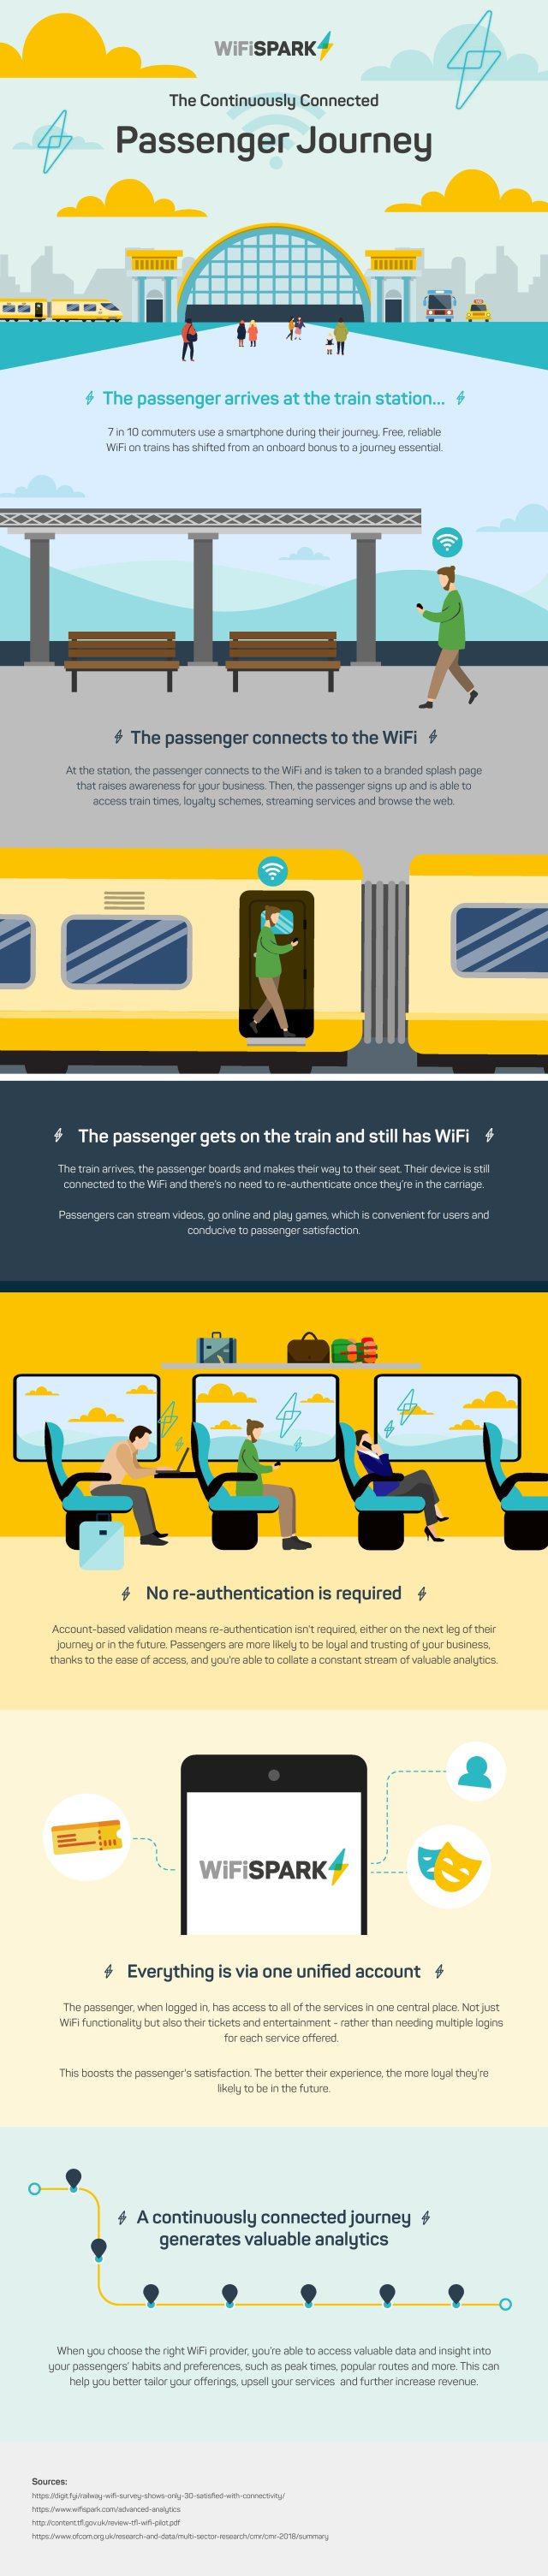 rail wifi infographic